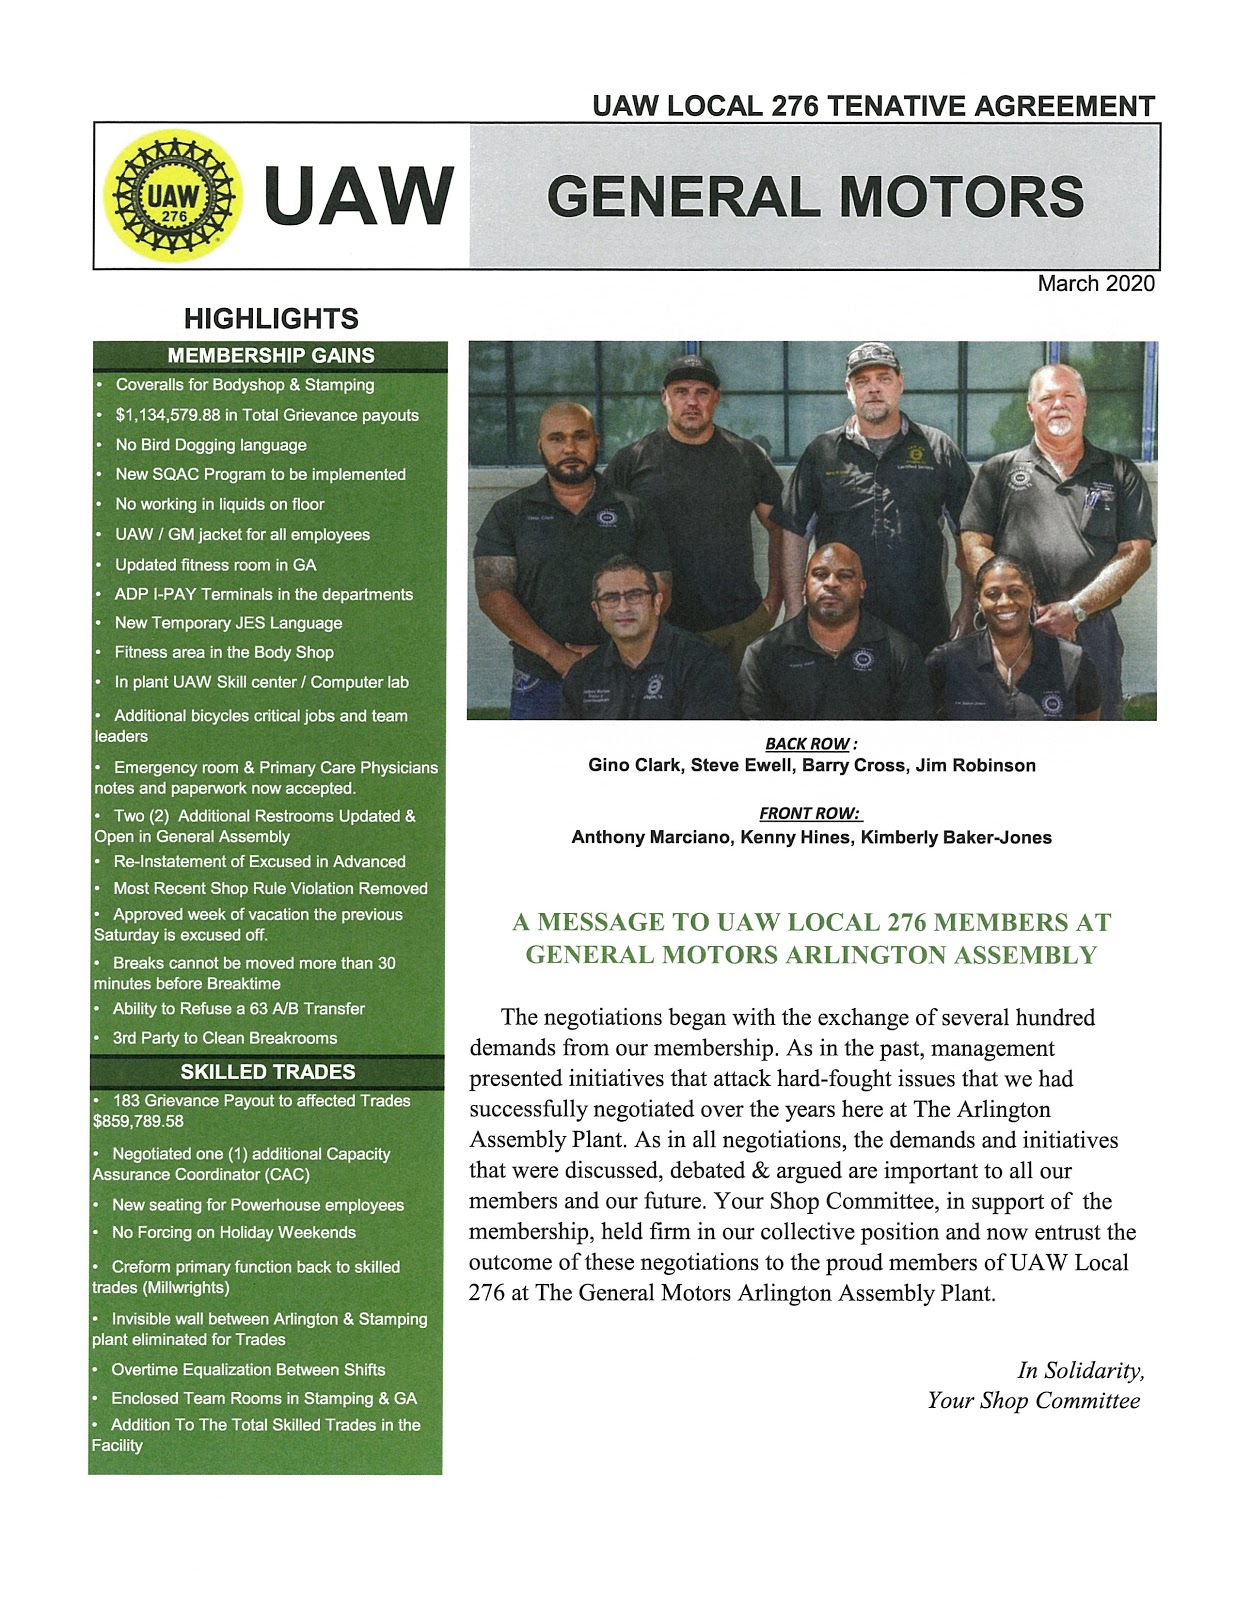 UAW Local 276 Official Site